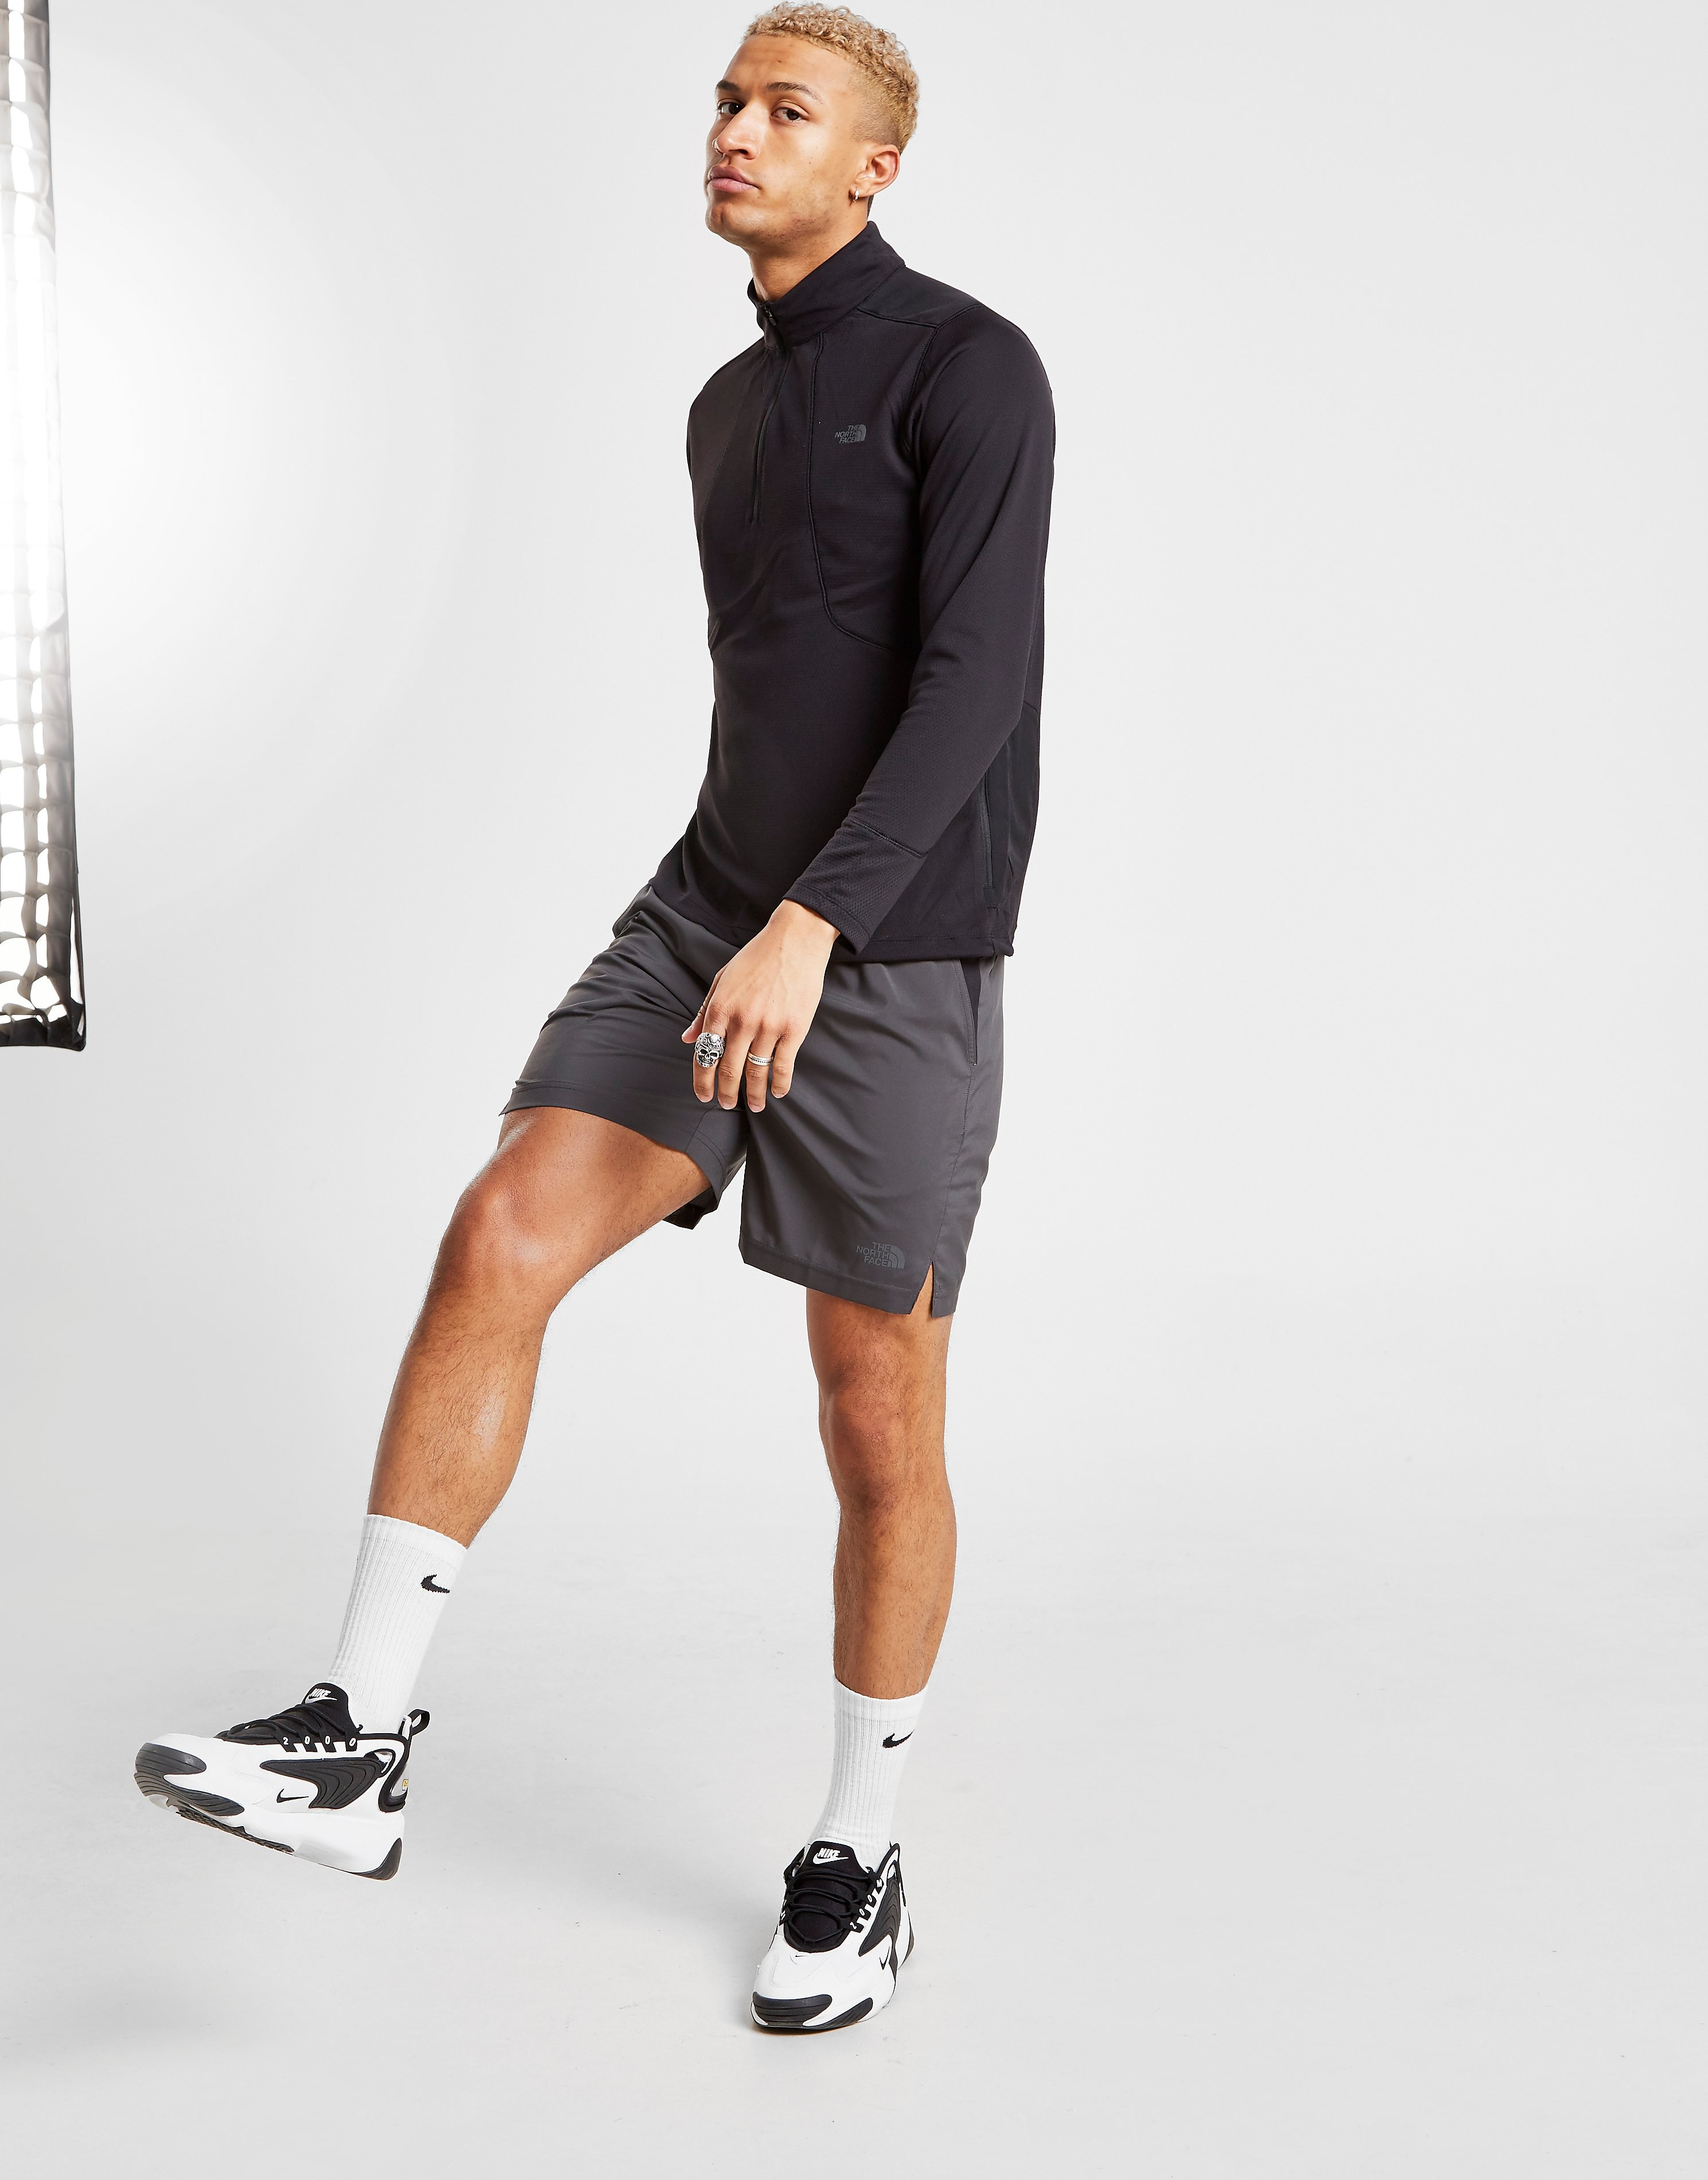 The North Face Reactor 24/7 Shorts - Grijs - Heren